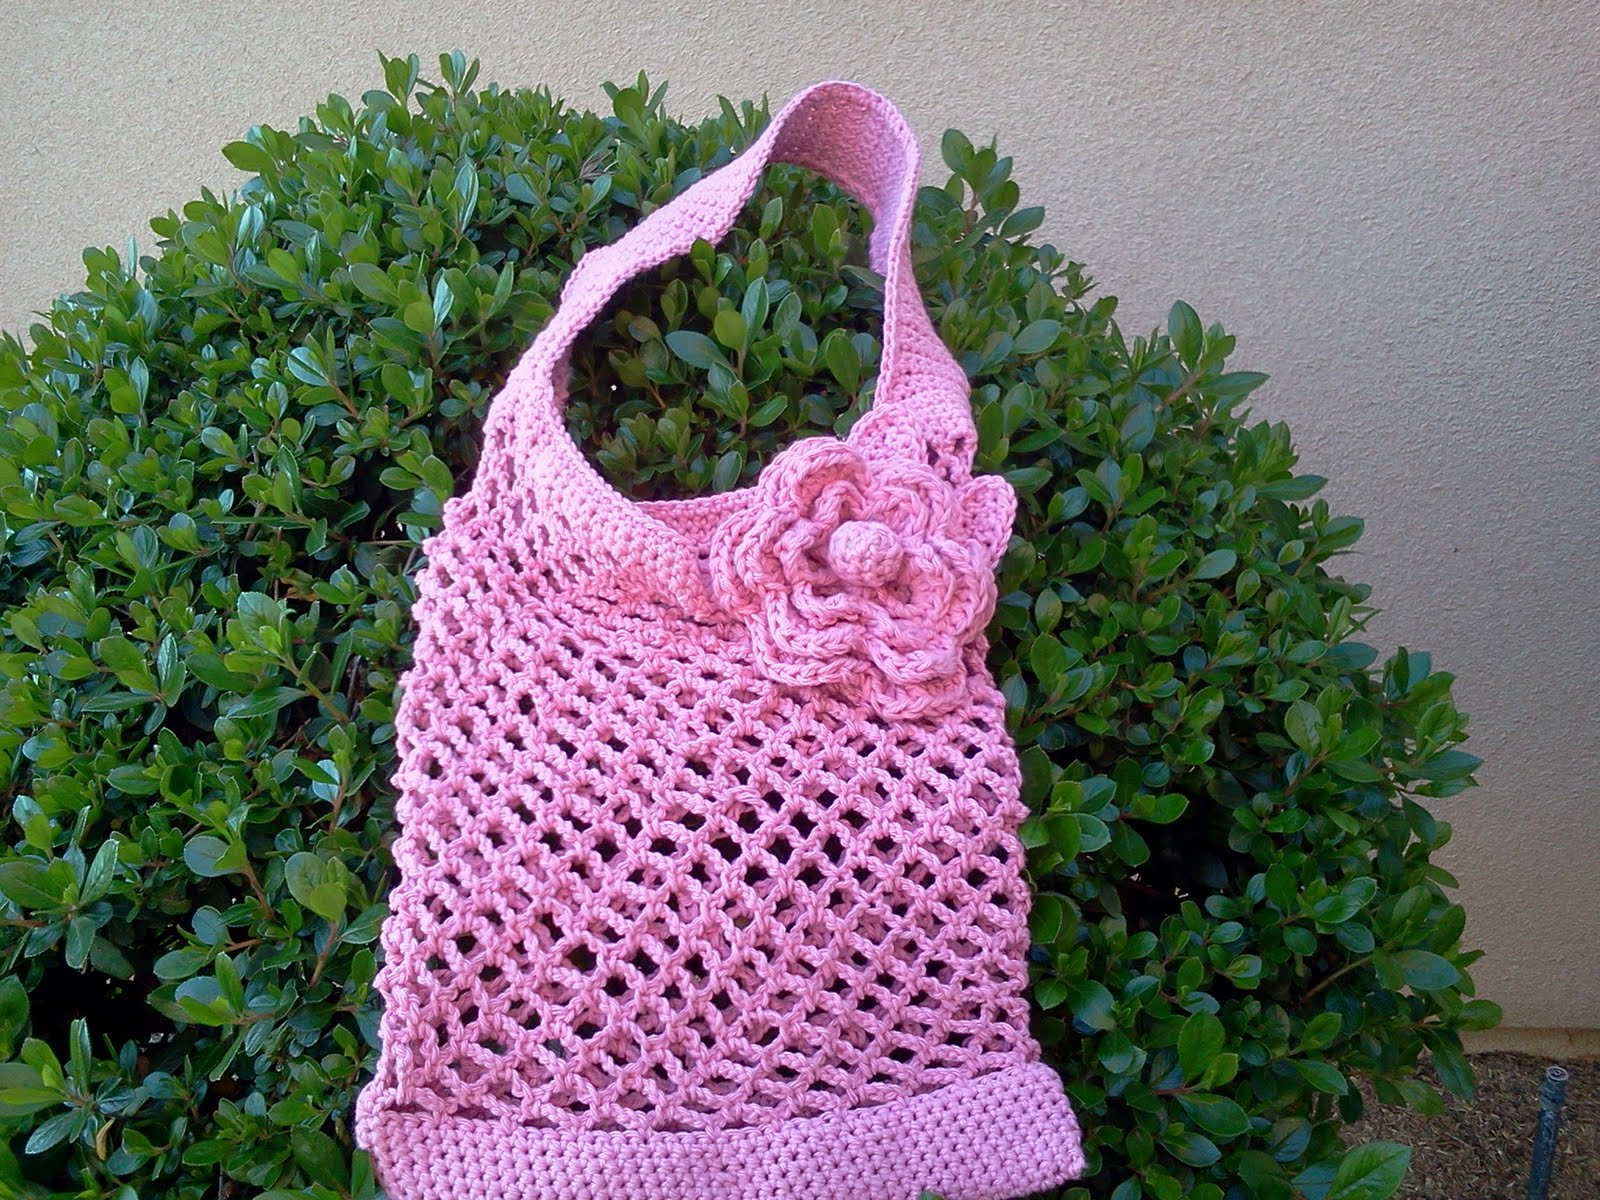 Easy Crochet Mesh Bag Pattern : MESH SHOPPING BAG CROCHET PATTERN ? Easy Crochet Patterns